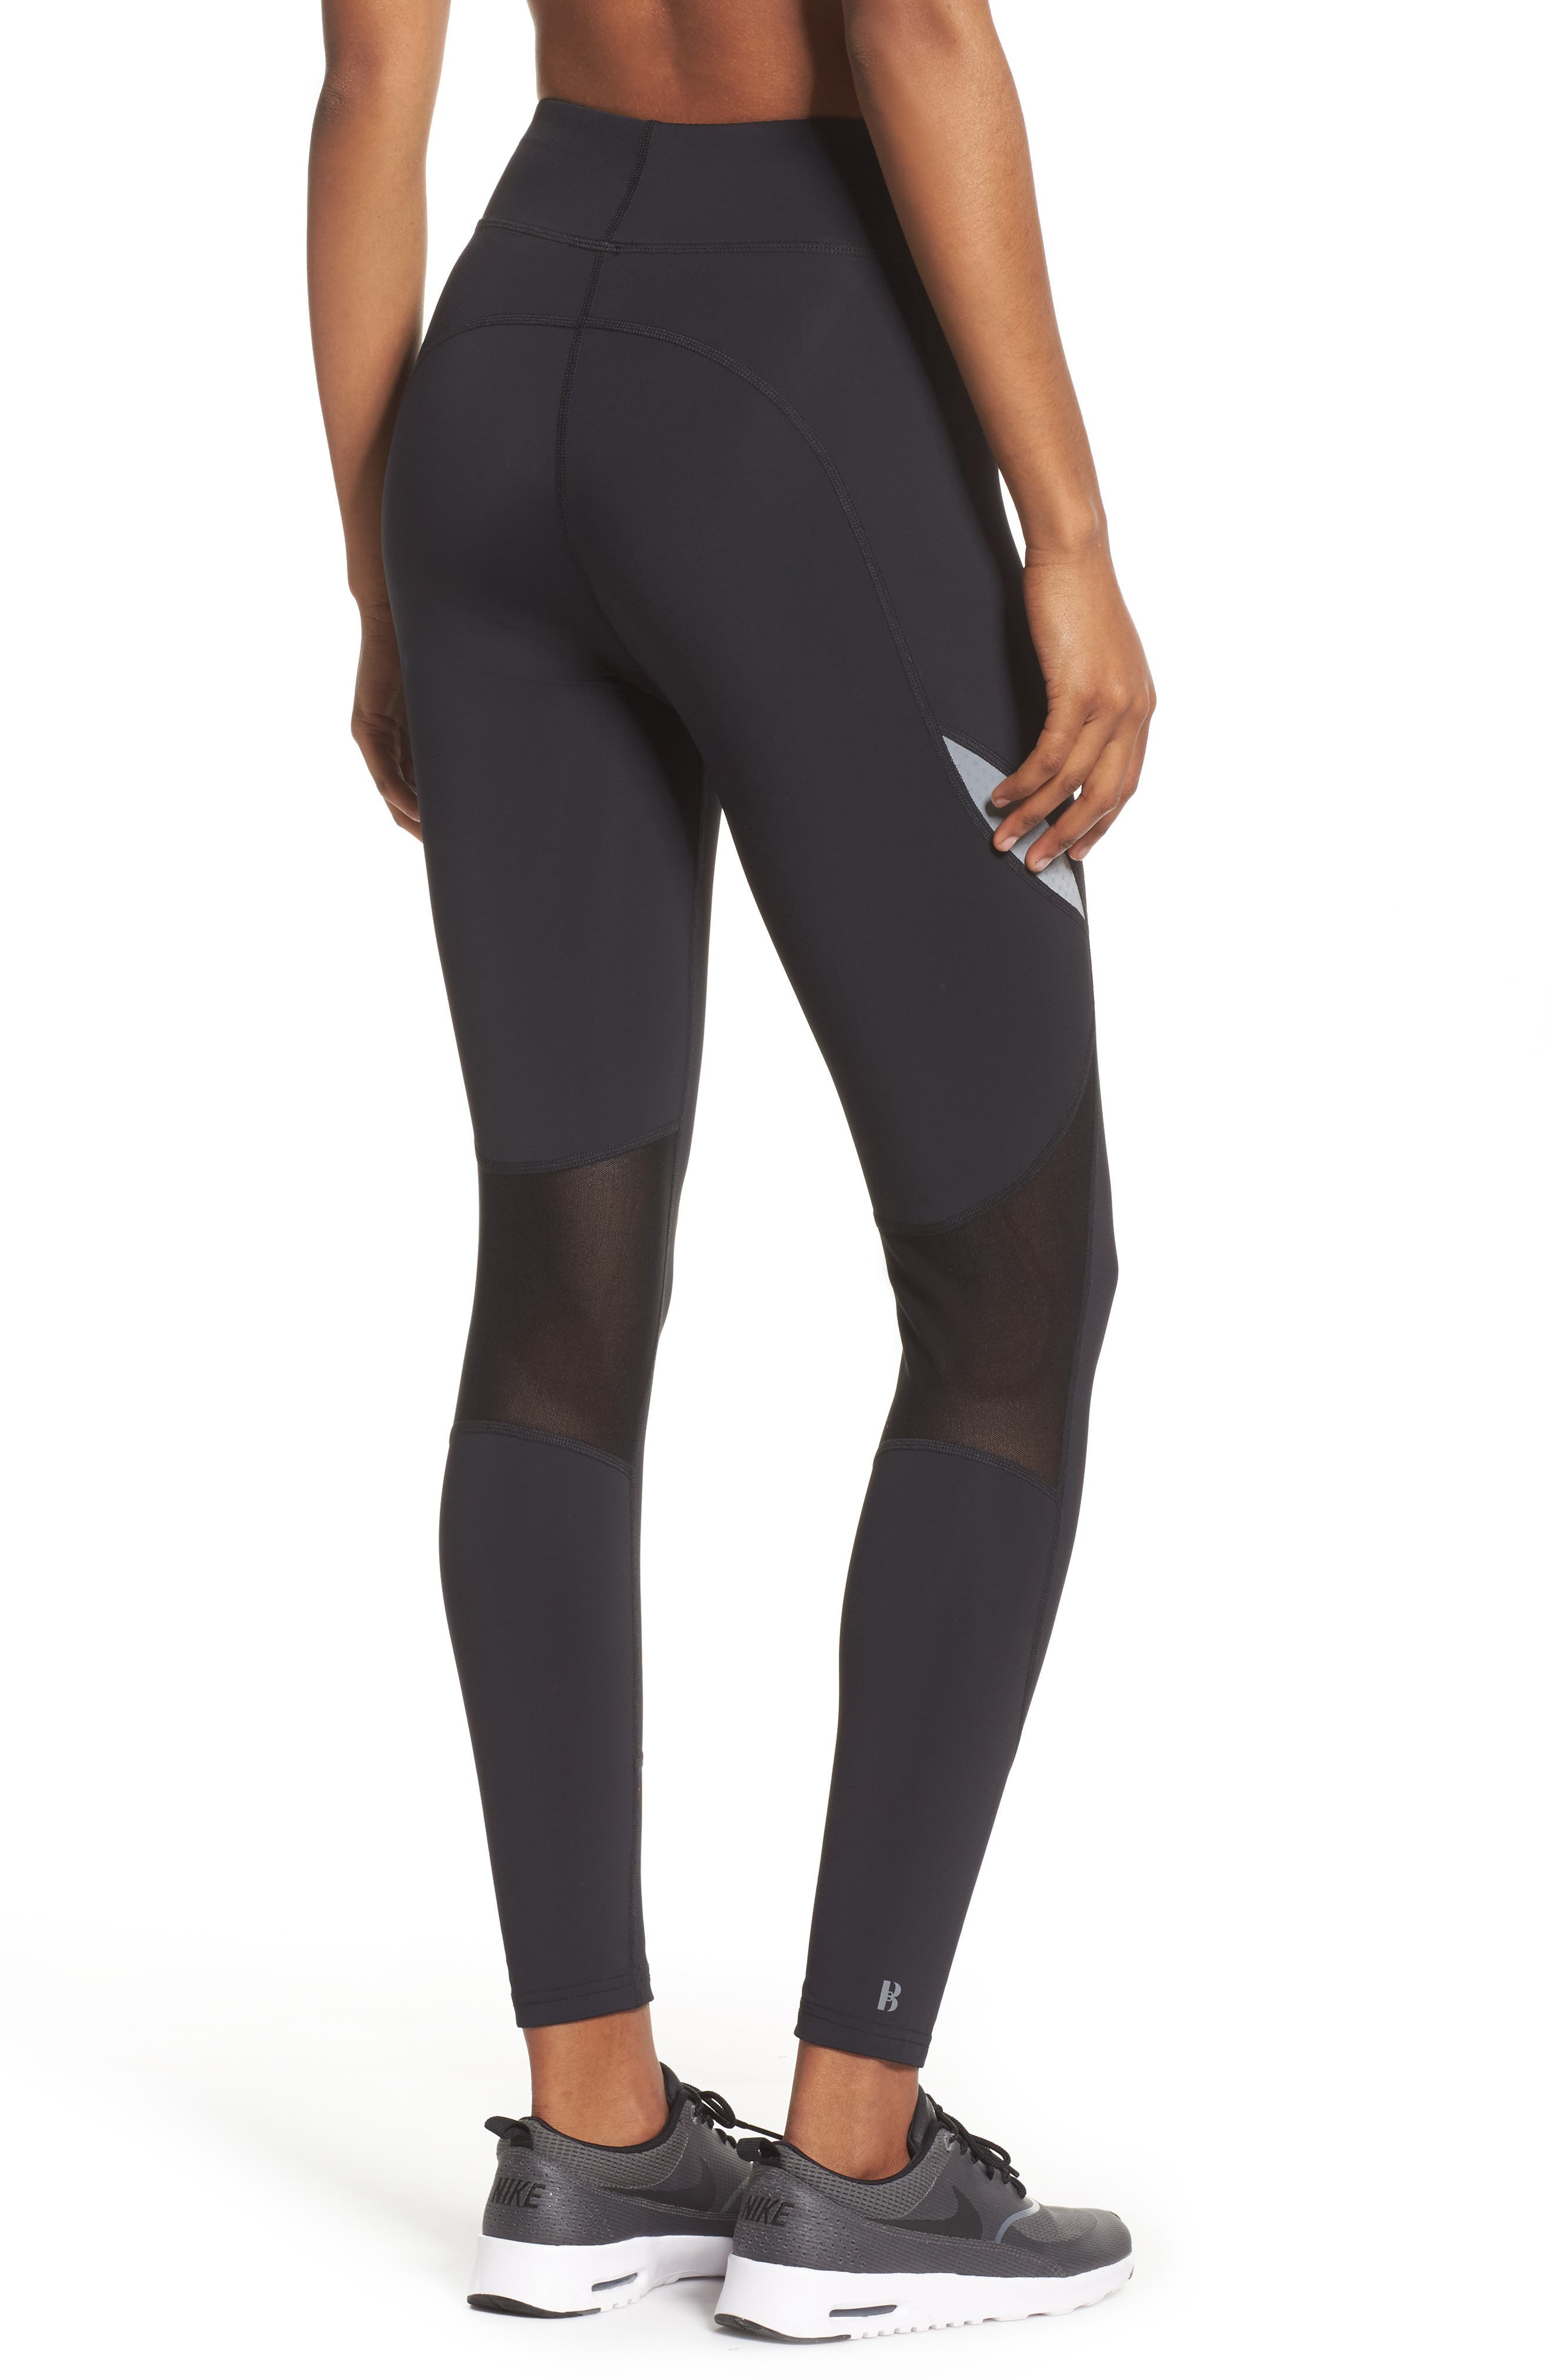 BoomBoom Athletica High Compression Sport Leggings,                             Alternate thumbnail 2, color,                             005